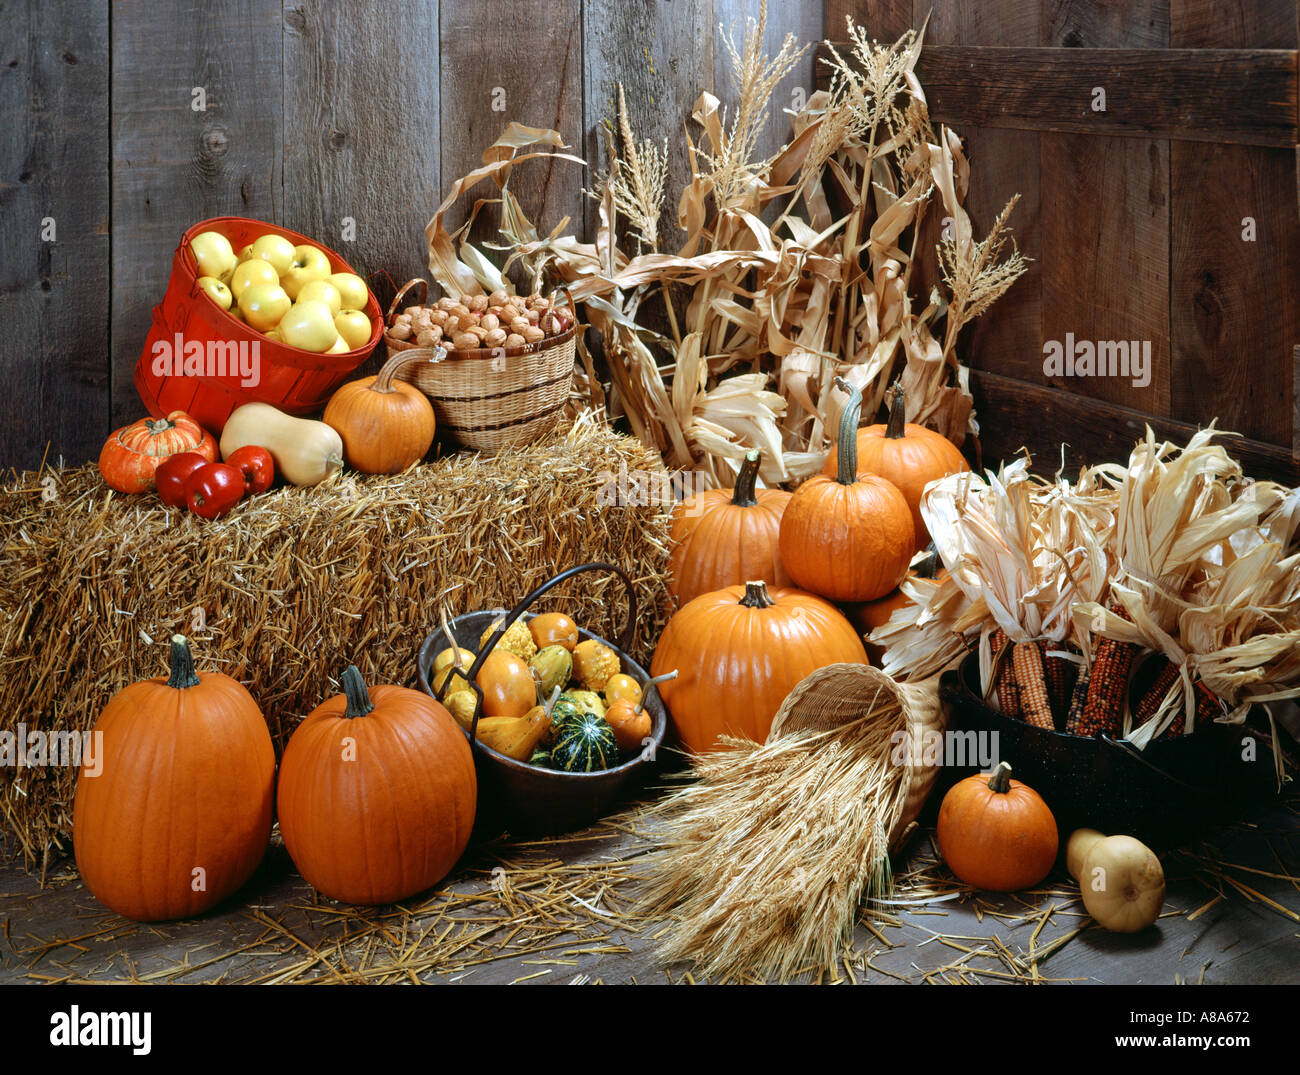 Fall Pumpkin Computer Wallpaper Fall Harvest Still Life With Bale Of Hay And Old Wood